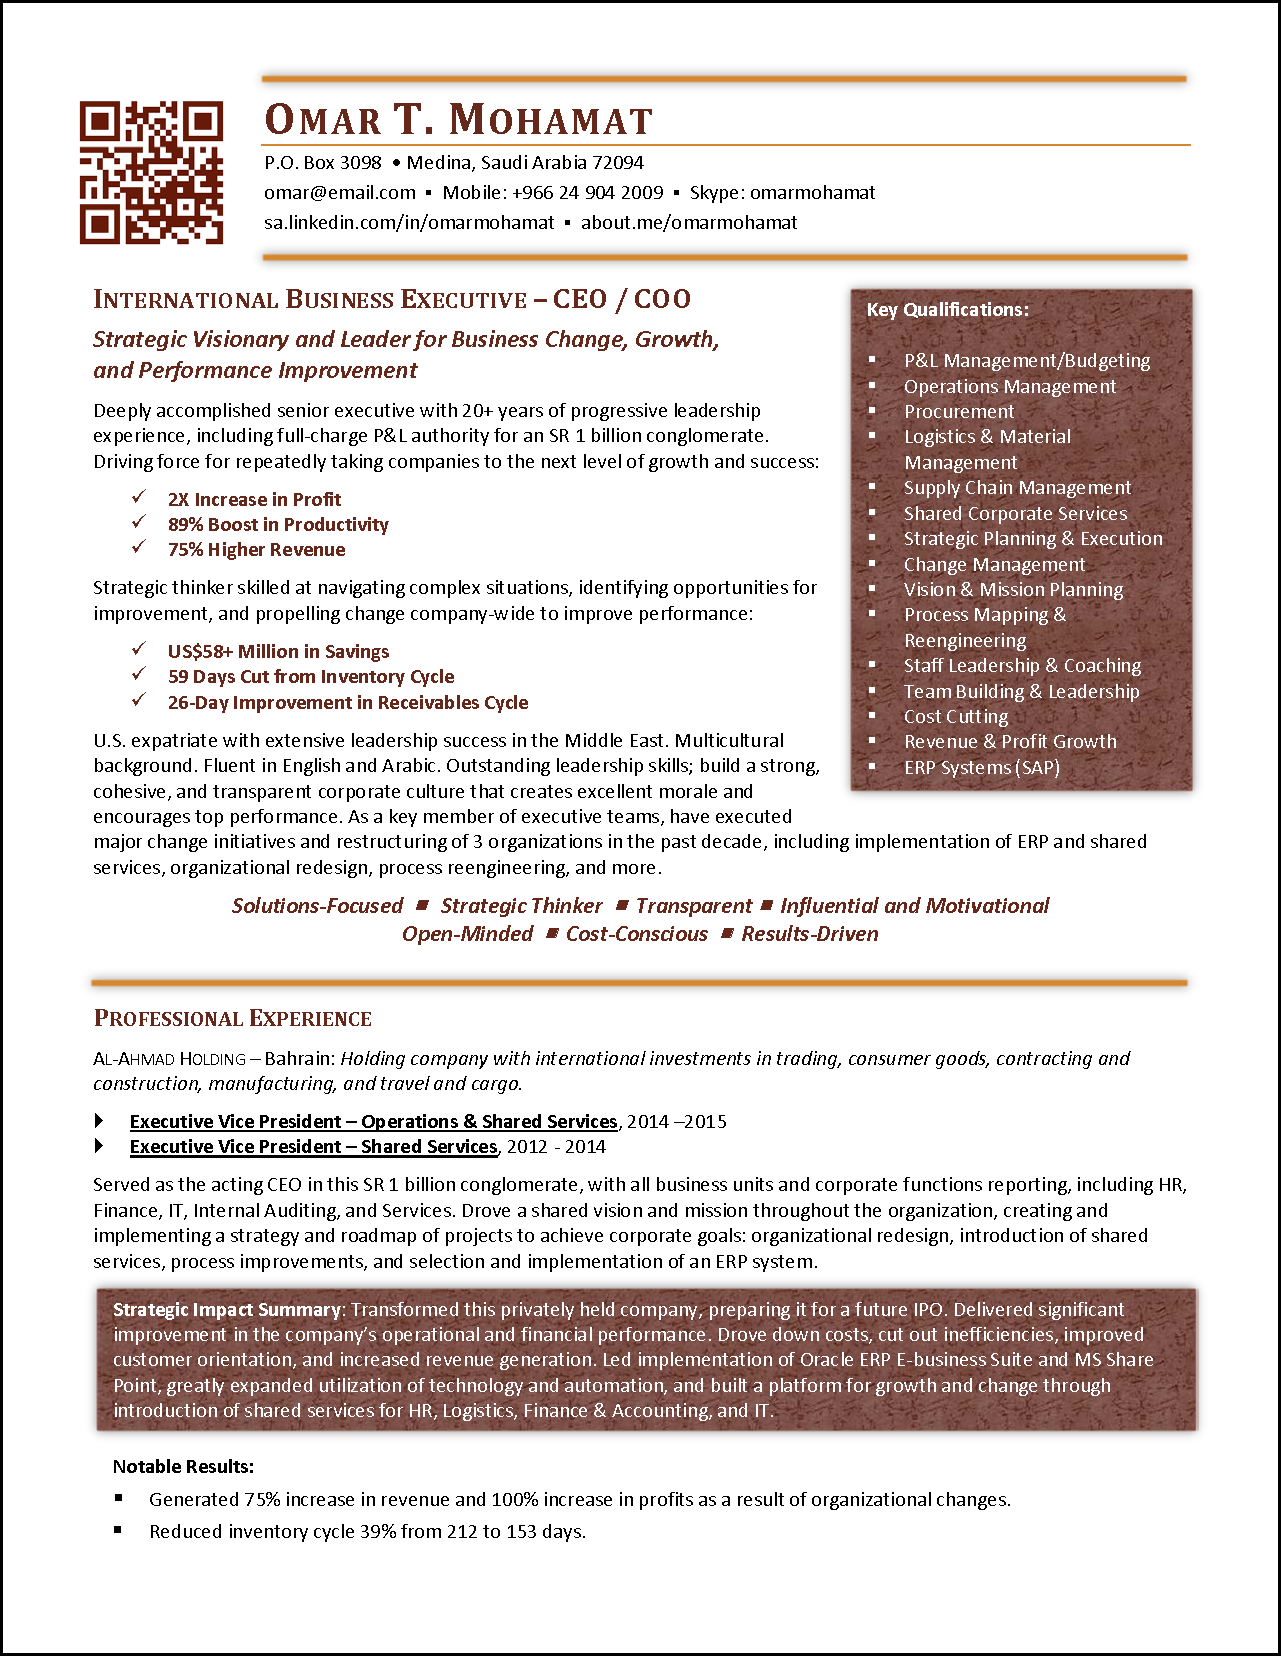 National Award Winning Executive Resume Examples, Executive Cover Letter  Examples, Infographic Resume Examples, Executive Biography Examples, And  Executive Resume Service